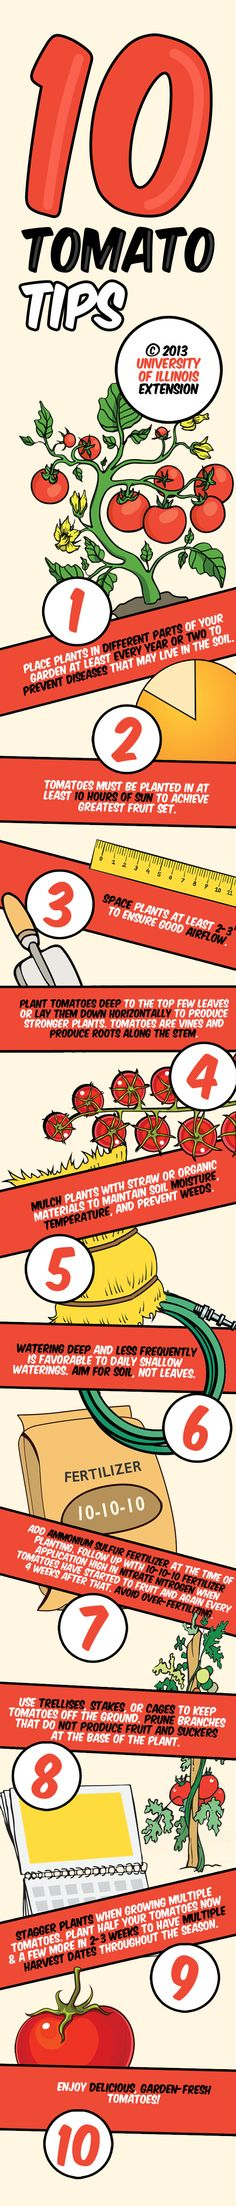 10 Tomato Tips for Growing the Perfect Tomato